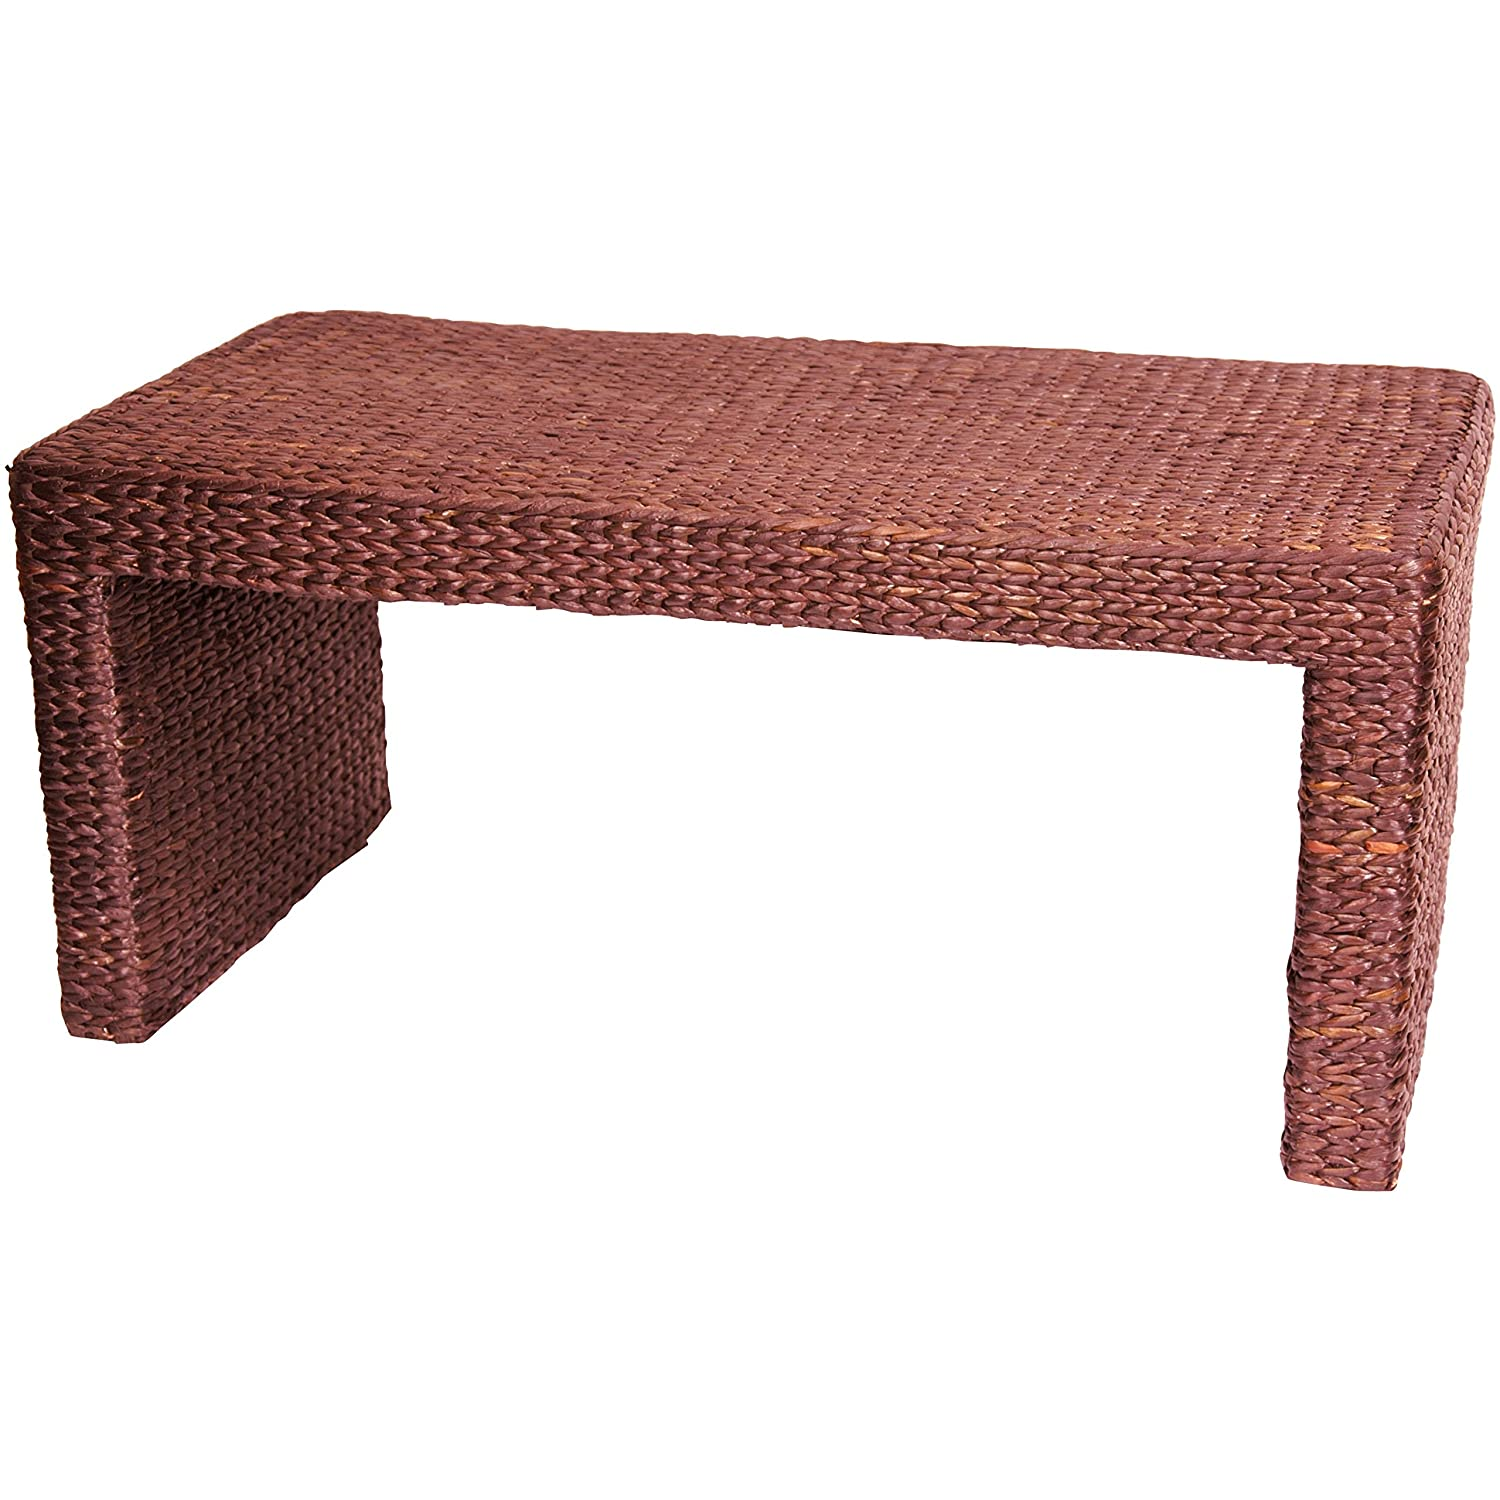 amazoncom oriental furniture simple natural fiber asian furnitue and decor 36 inch woven water hyacinth rattan style japanese design coffee table amazoncom oriental furniture rosewood korean tea table